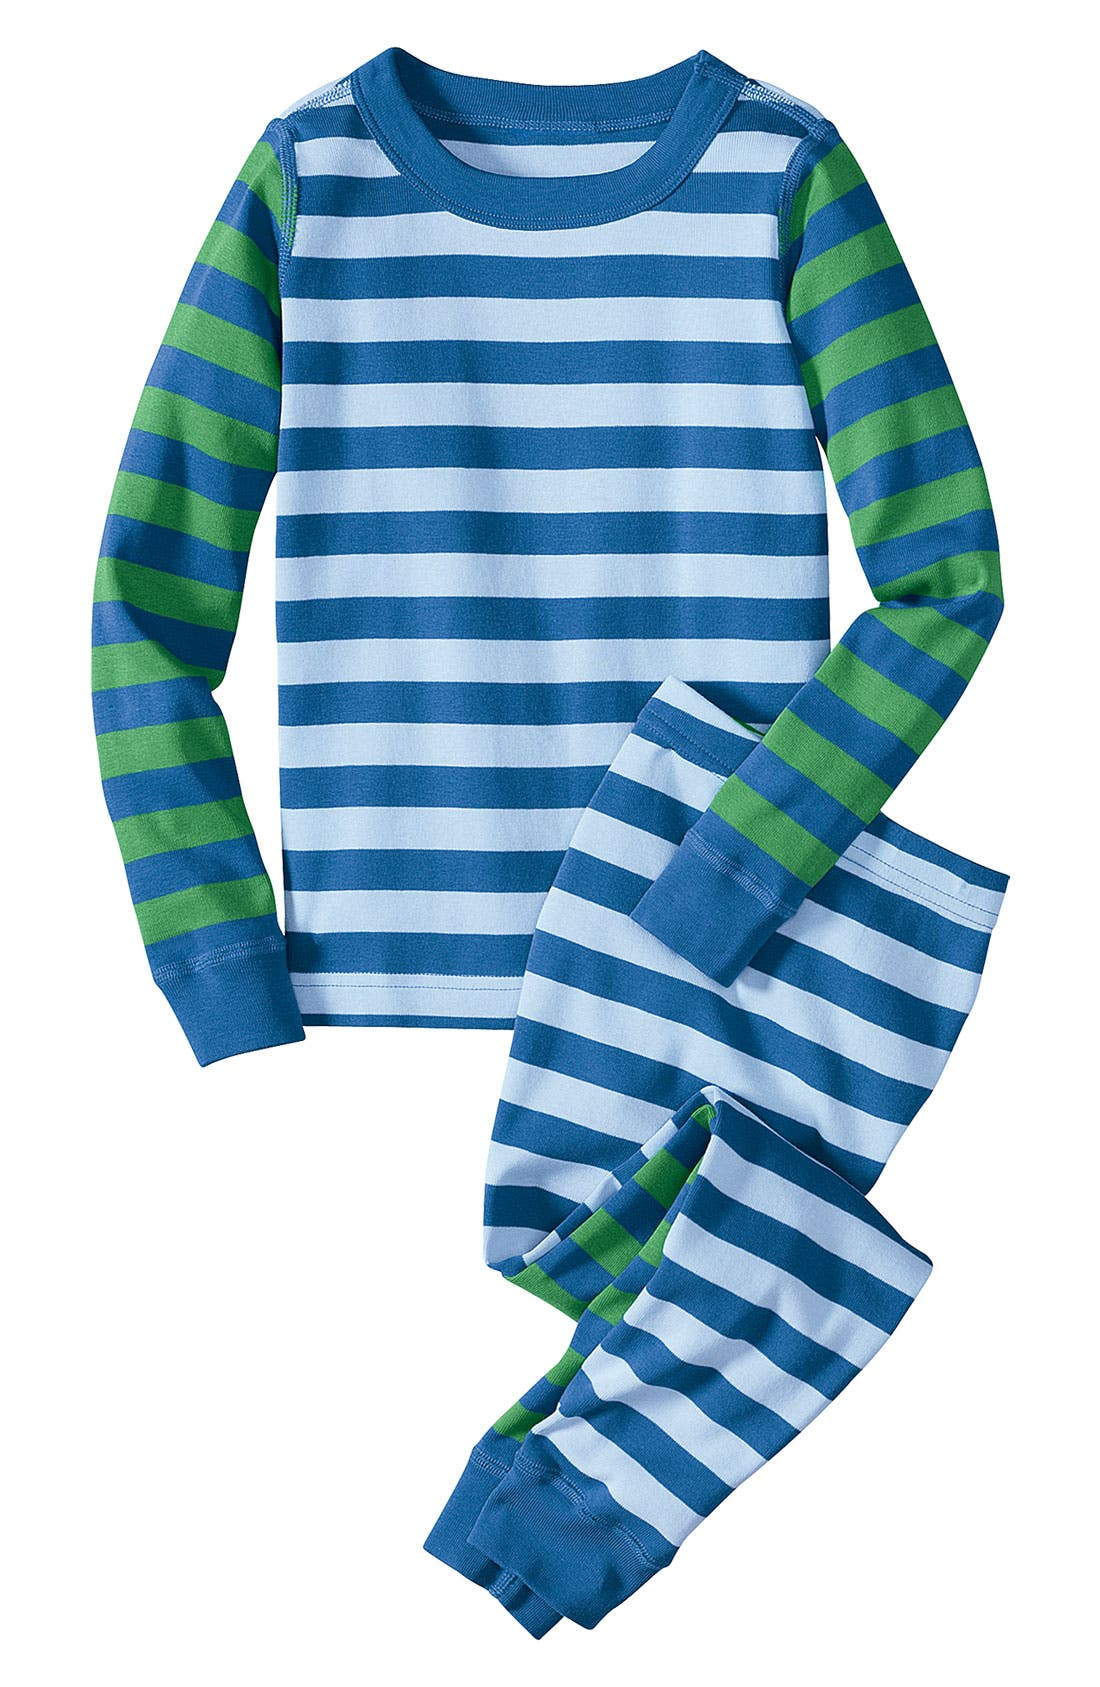 Alternate Image 1 Selected - Hanna Andersson 'Mix it Up' Two Piece Fitted Pajamas (Little Boys)